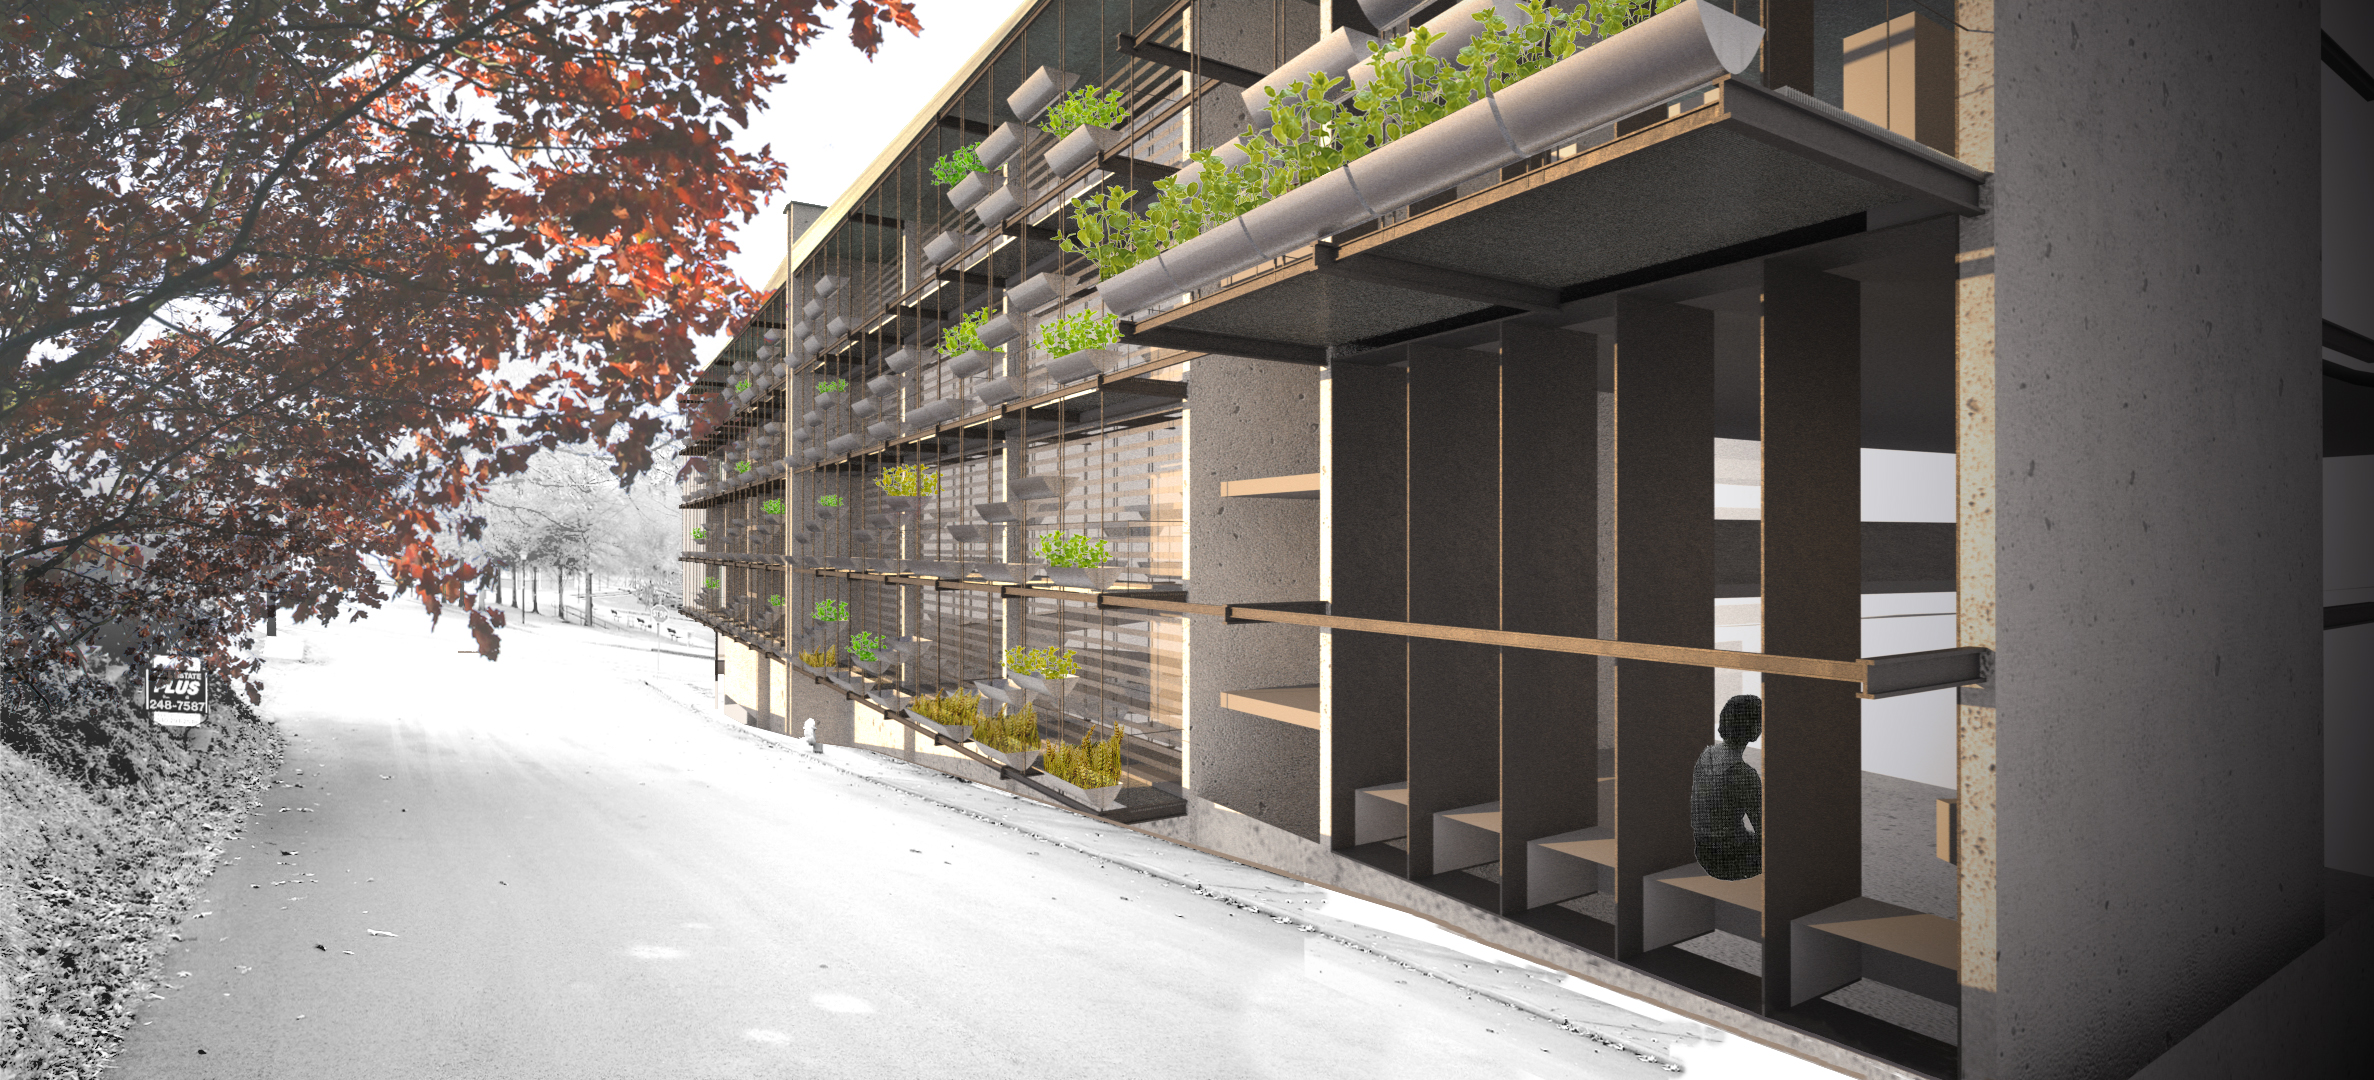 Community Focused Multifamily Housing. A productive louvered facade filters sunlight and produces food for residents.